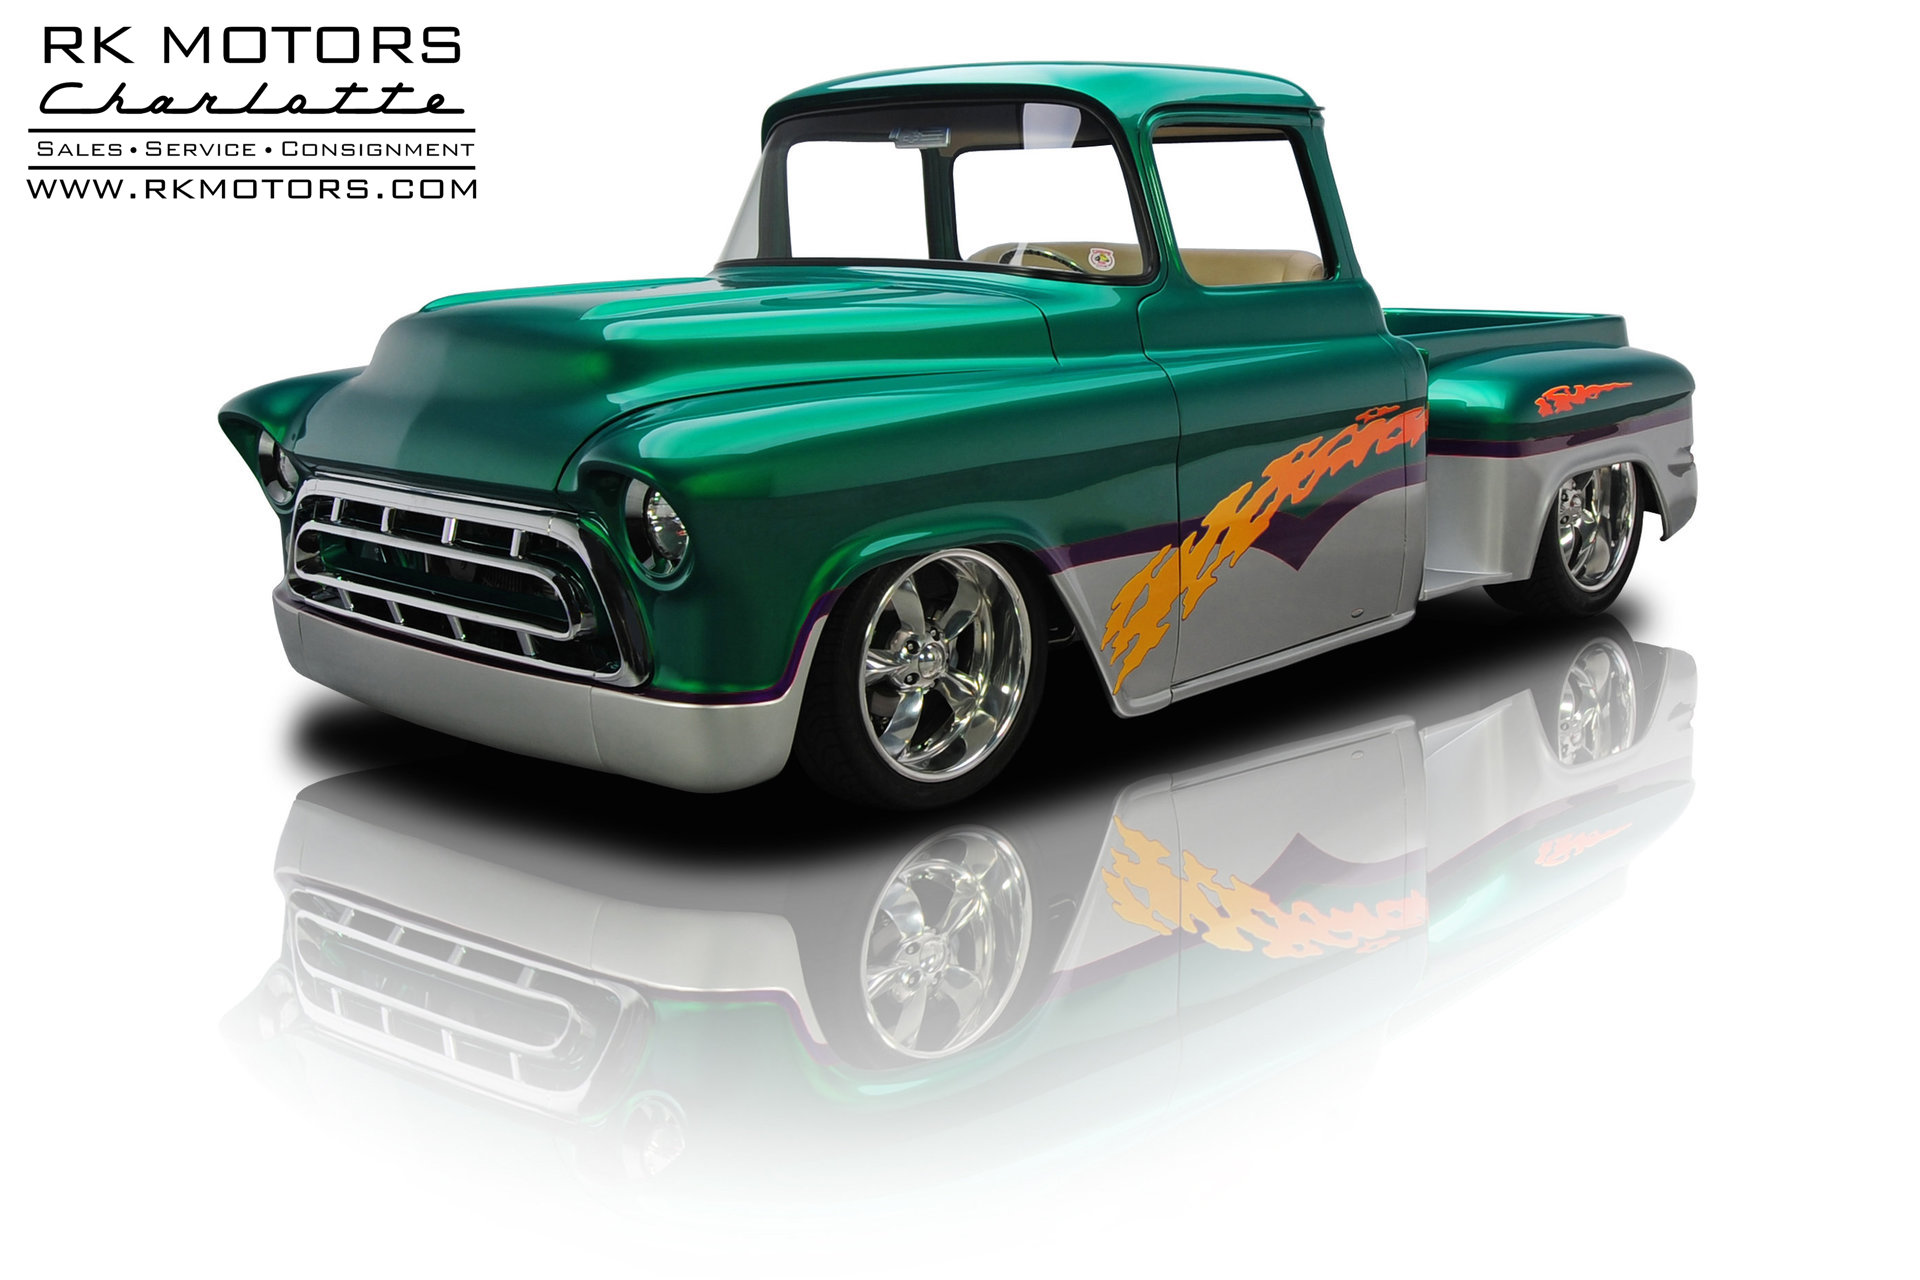 133099 1957 Chevrolet 1 2 Ton Pickup Rk Motors Classic Cars For Sale Chevy Truck Paint Colors